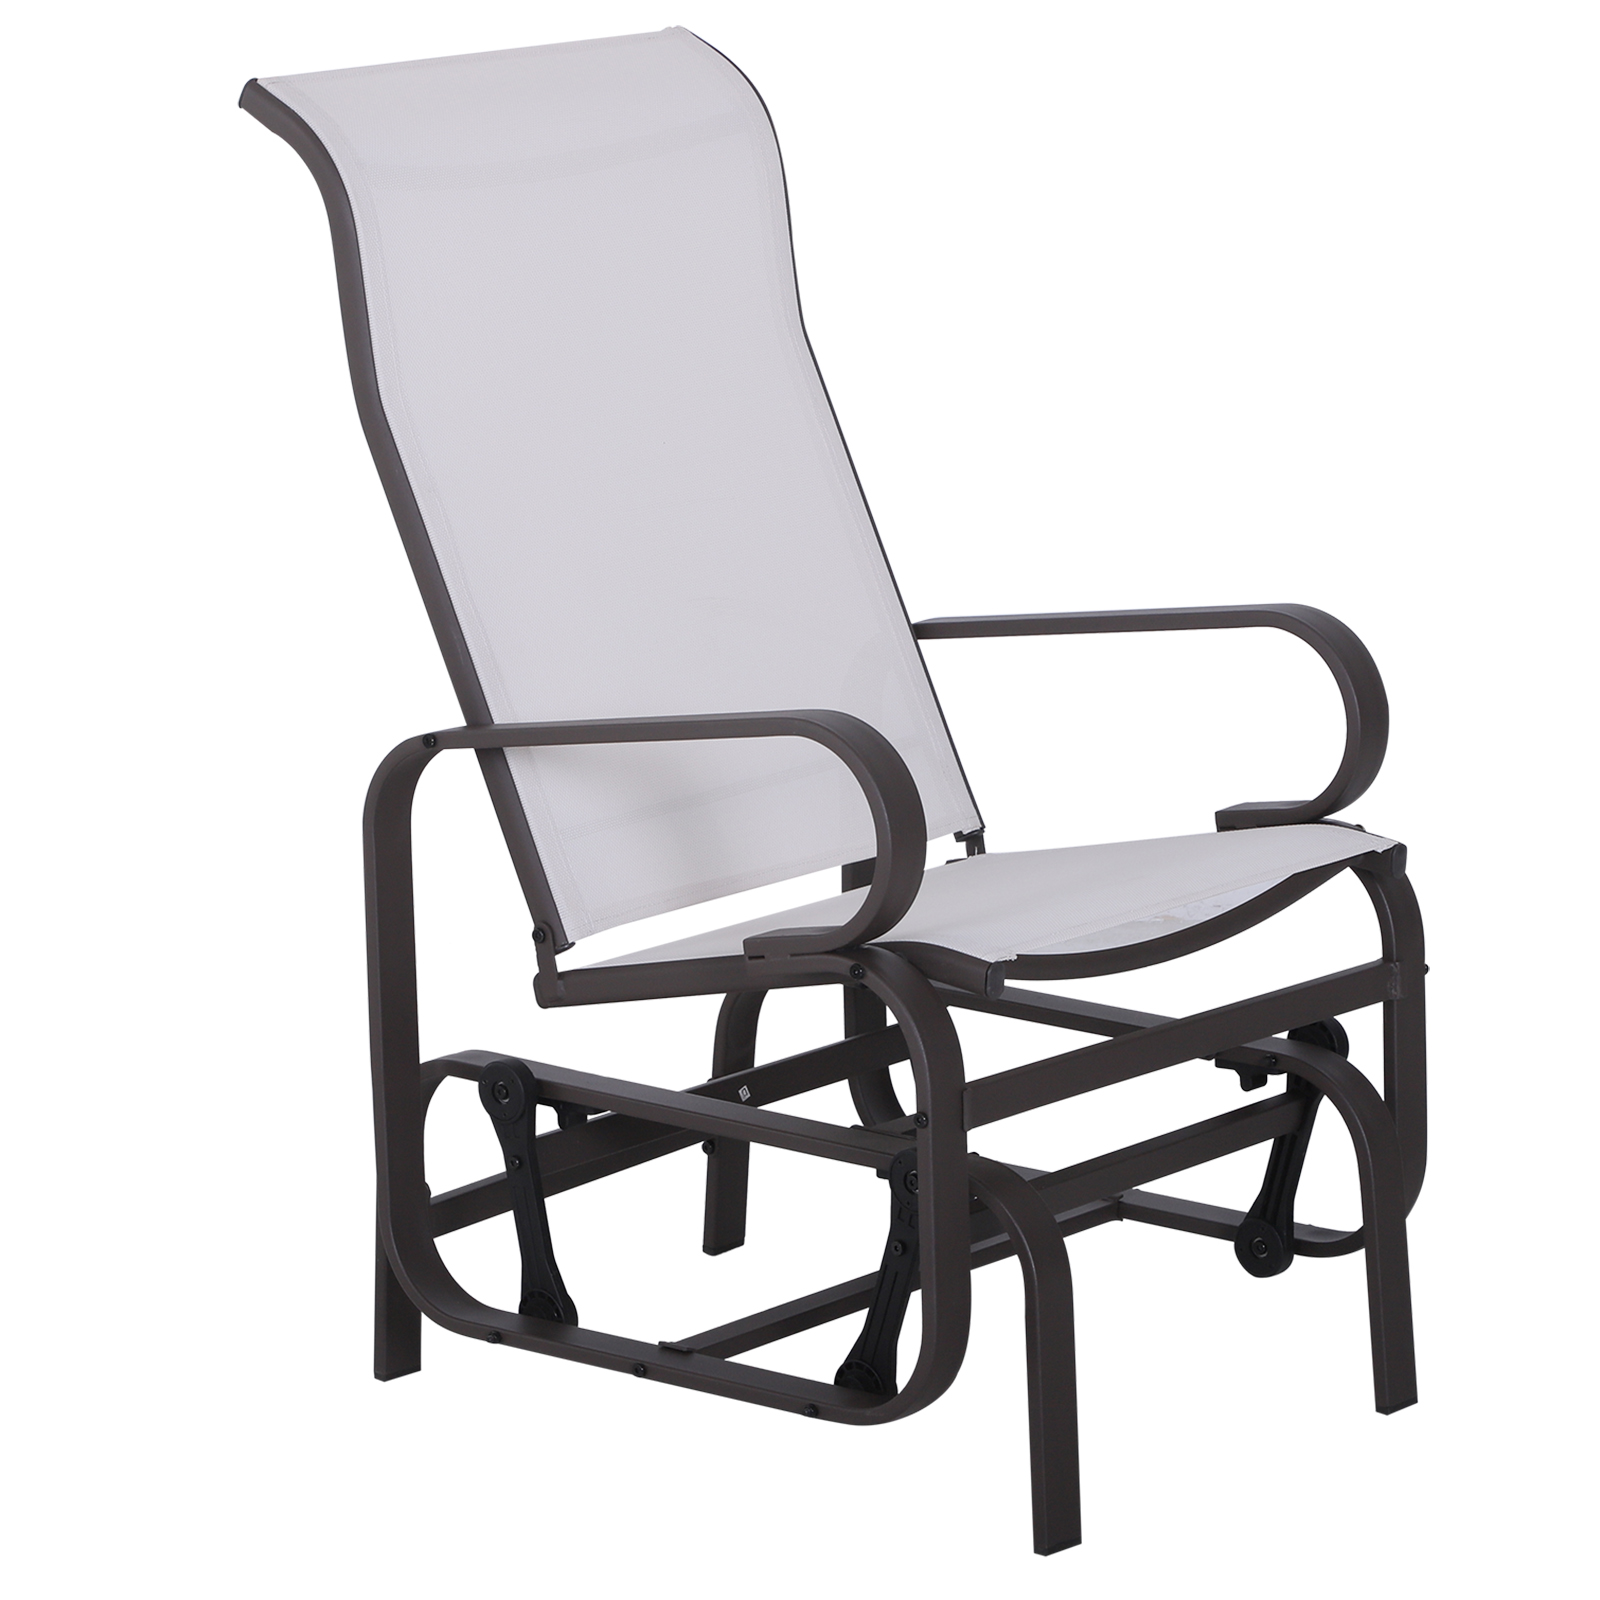 Outsunny Patio Sling Fabric Glider Garden Swing Chair Lounger Porch Rocker